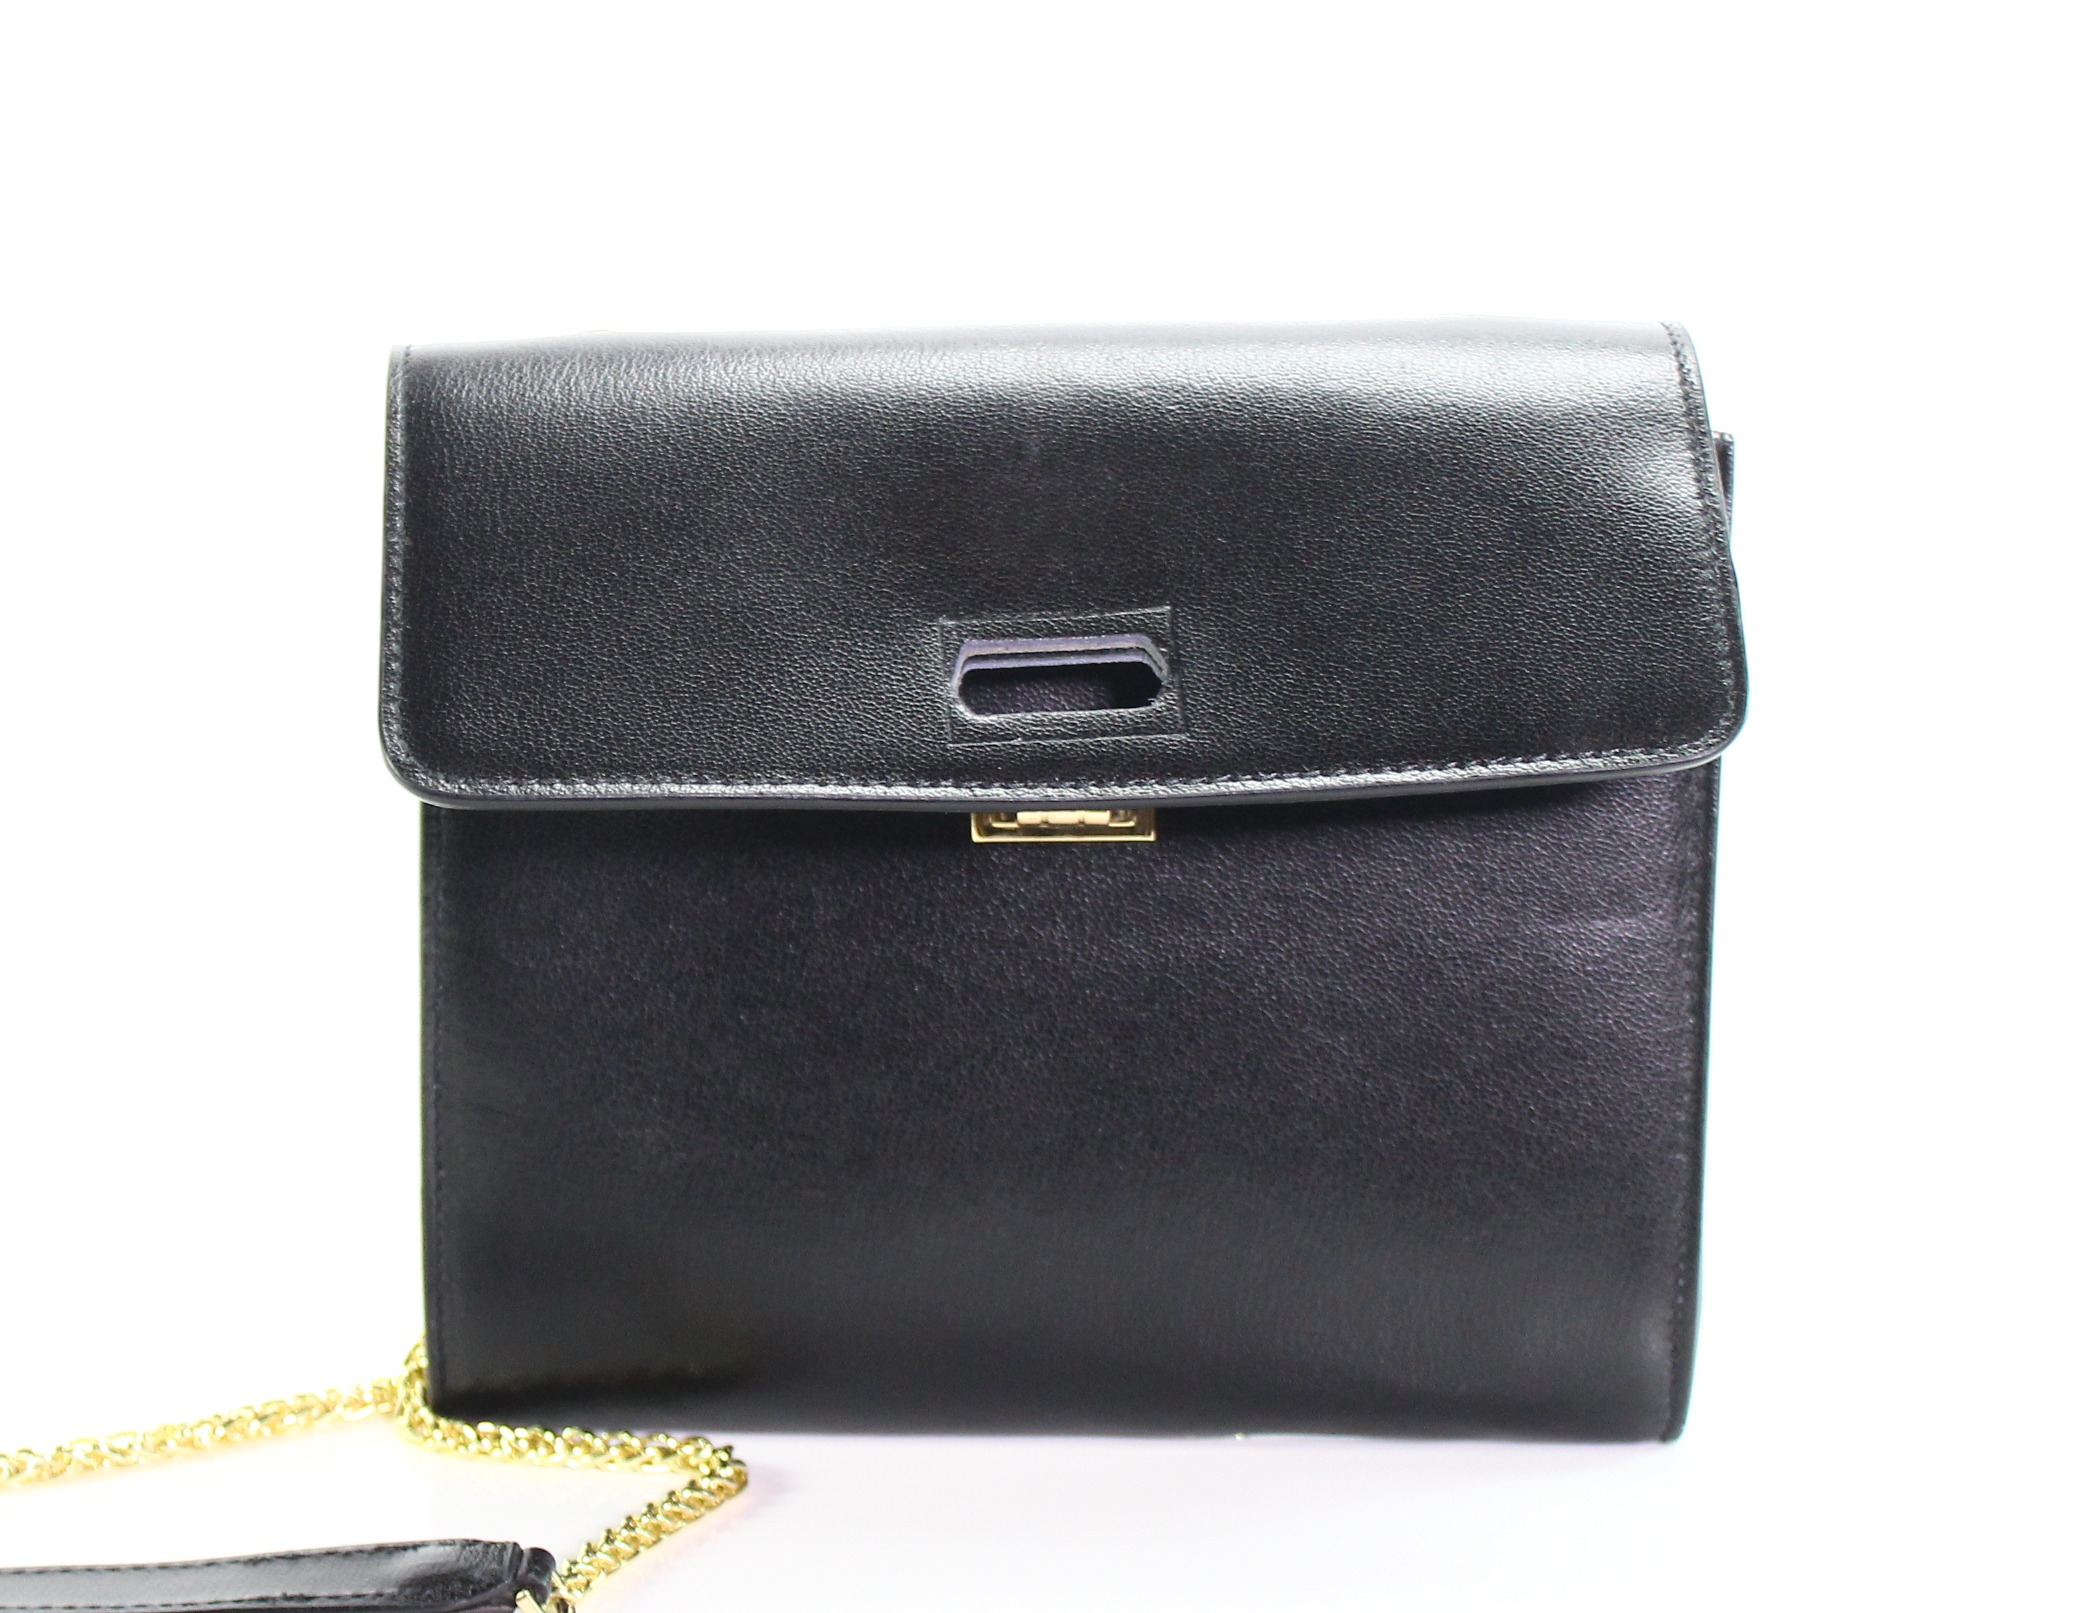 0f9ae3a05d3 Details about Valentino NEW Black Gold Chain Crossbody Leather Handbag Purse   269-  005